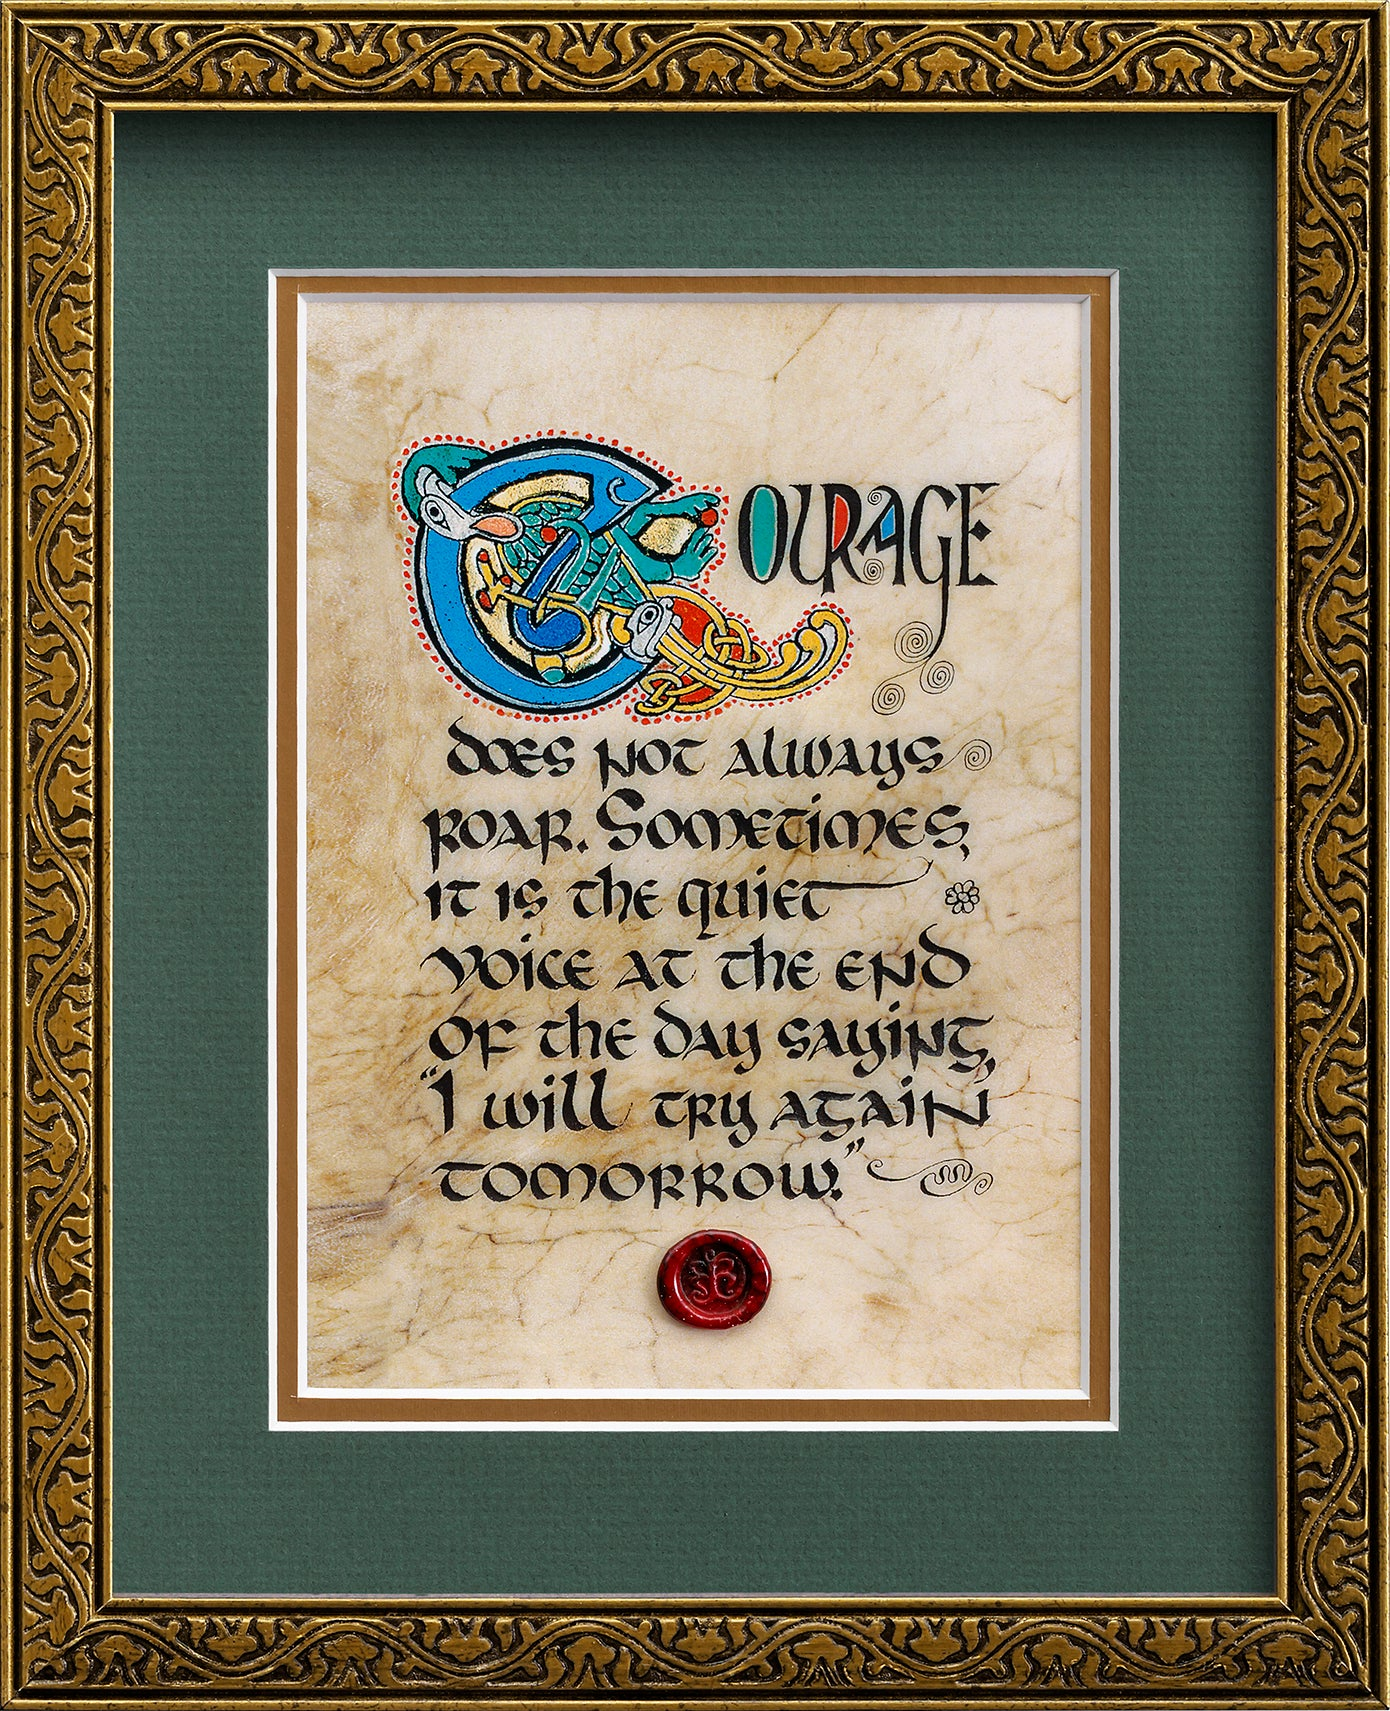 Courage - Framed Celtic Art Print